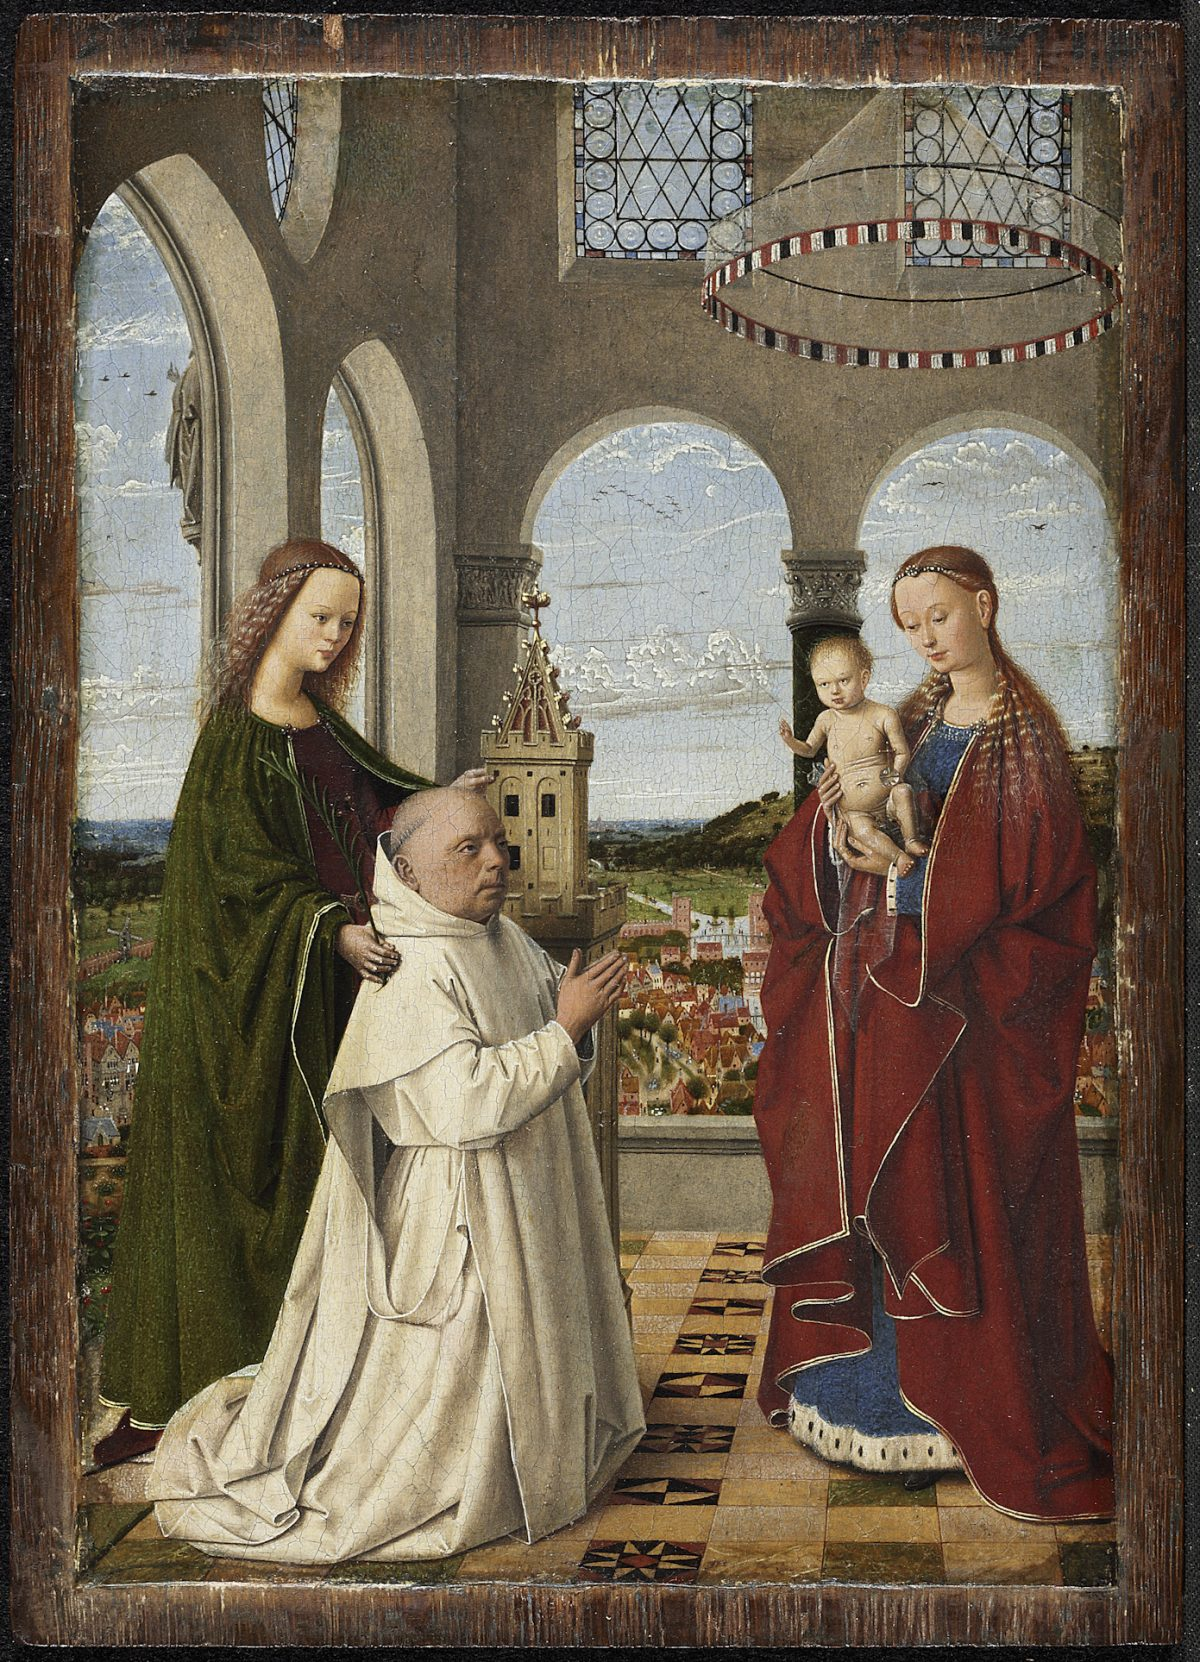 """The Virgin and Child with St. Barbara and Jan Vos (known as the Exeter Virgin),"" circa 1450, by Petrus Christus. Oil on panel, 7 5/8 inches by 5 ½ inches, Staatliche Museen zu Berlin, Gemäldegalerie. (Courtesy of The Frick Collection)"